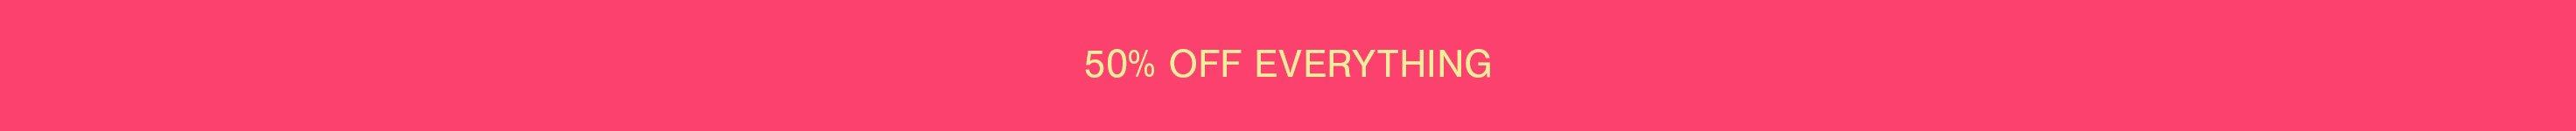 50 off everything